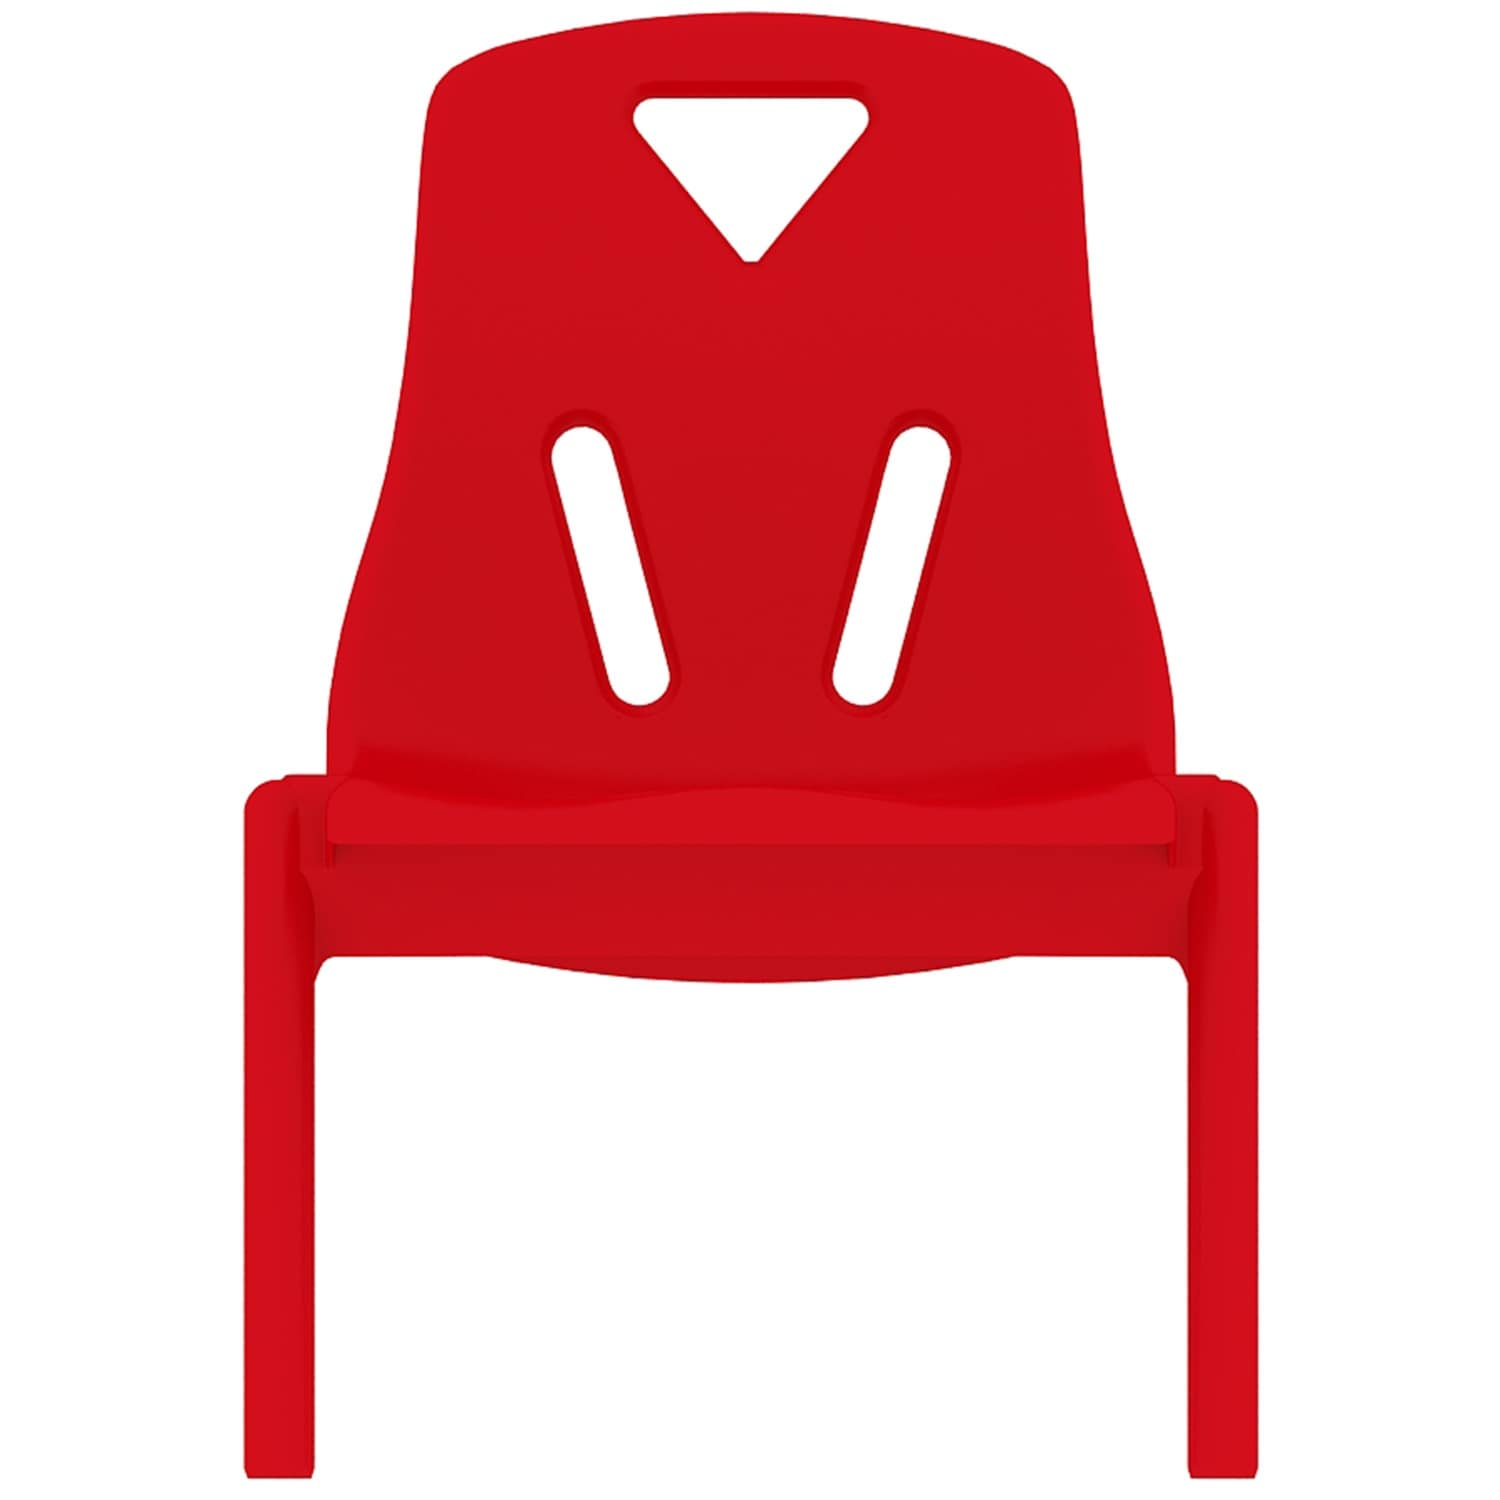 Boys Chair 2xhome Stackable Kids Chair Plastic For Toddler 2 3 4 Years Old Child Children Boys Preschool Desk Dining Living Bedroom